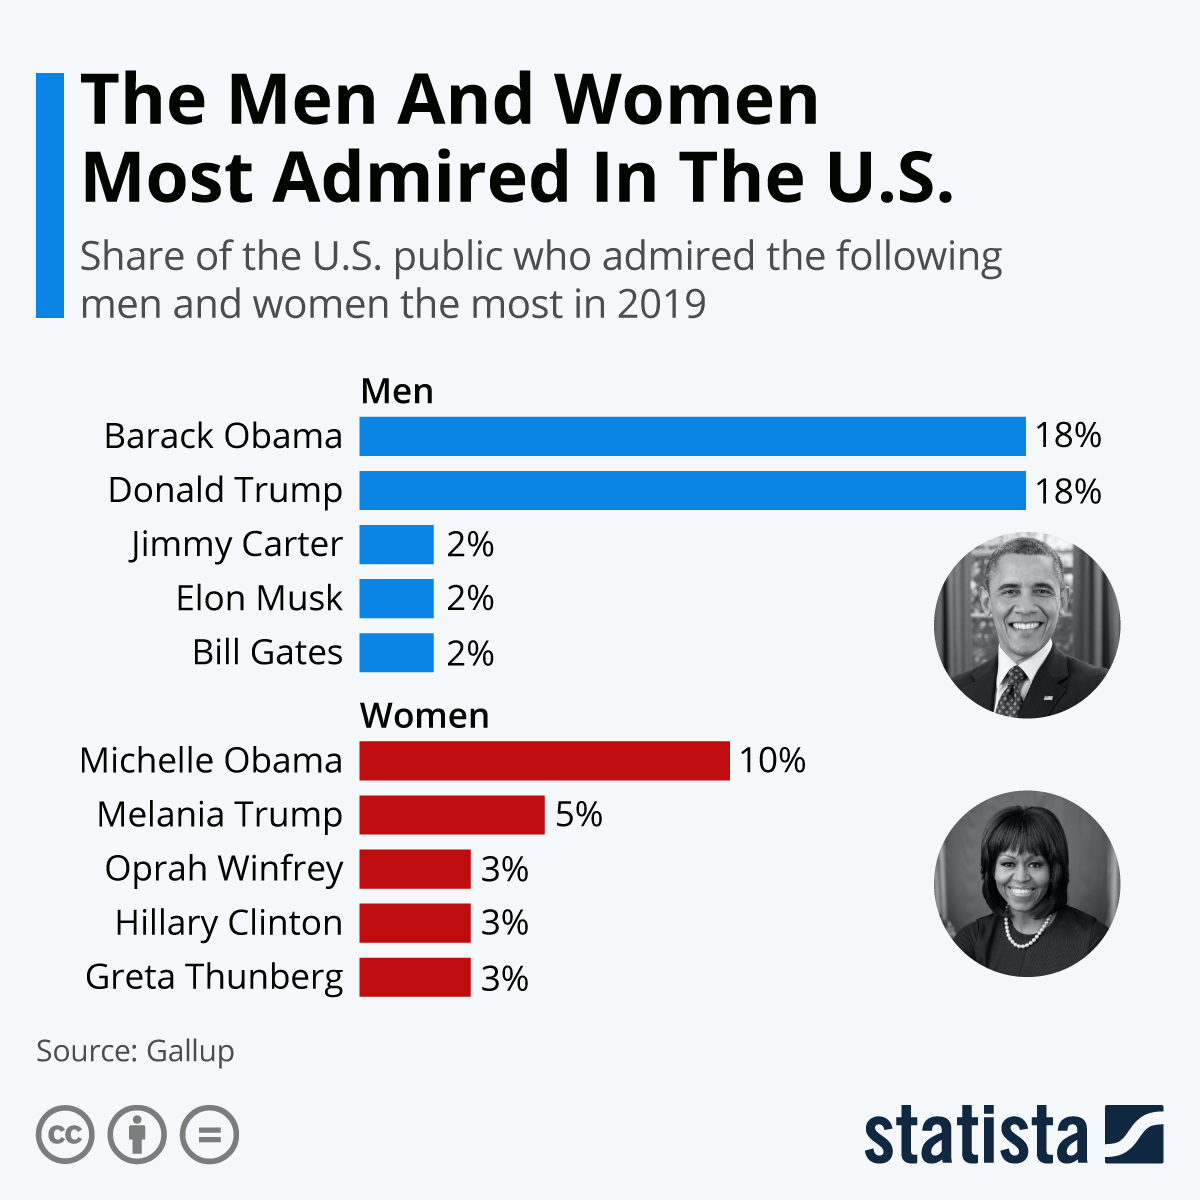 Infographic: The Men And Women Most Admired In The U.S. In 2019 | Statista